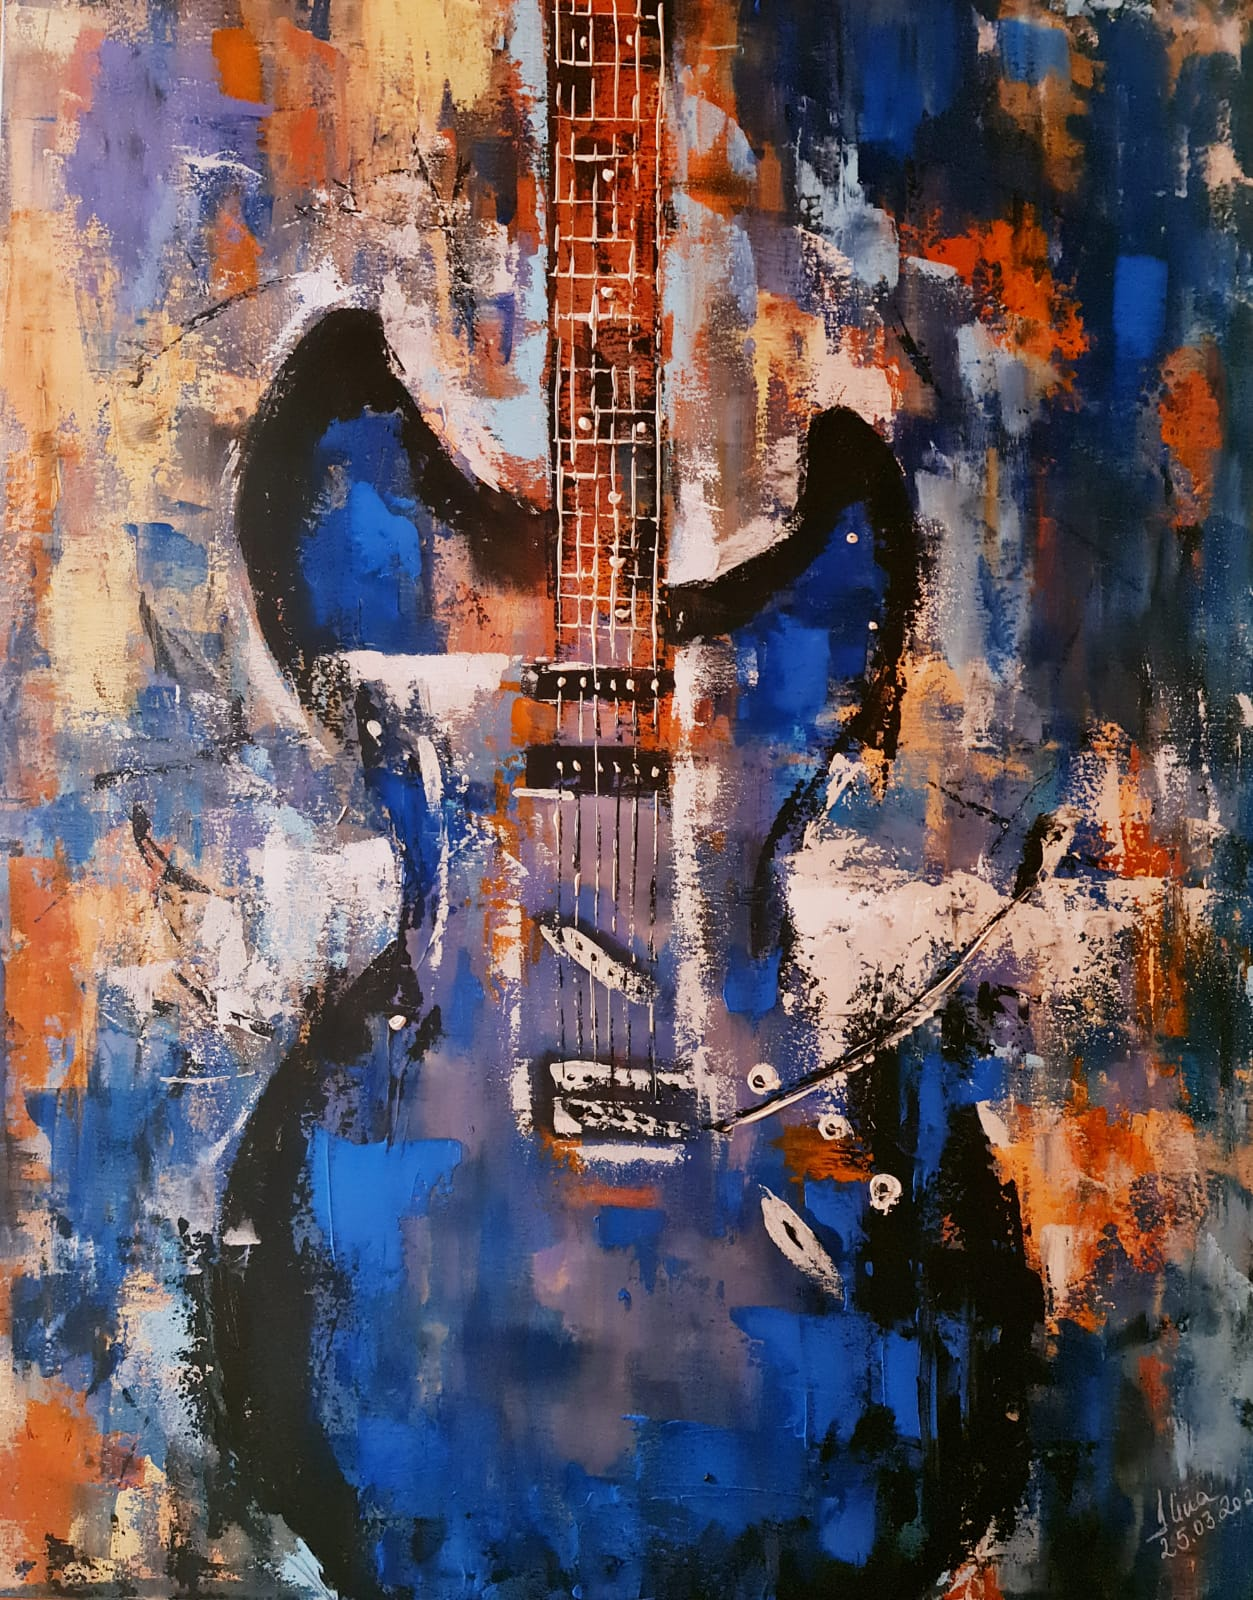 ArteDiAlina.com painting: Love & blues